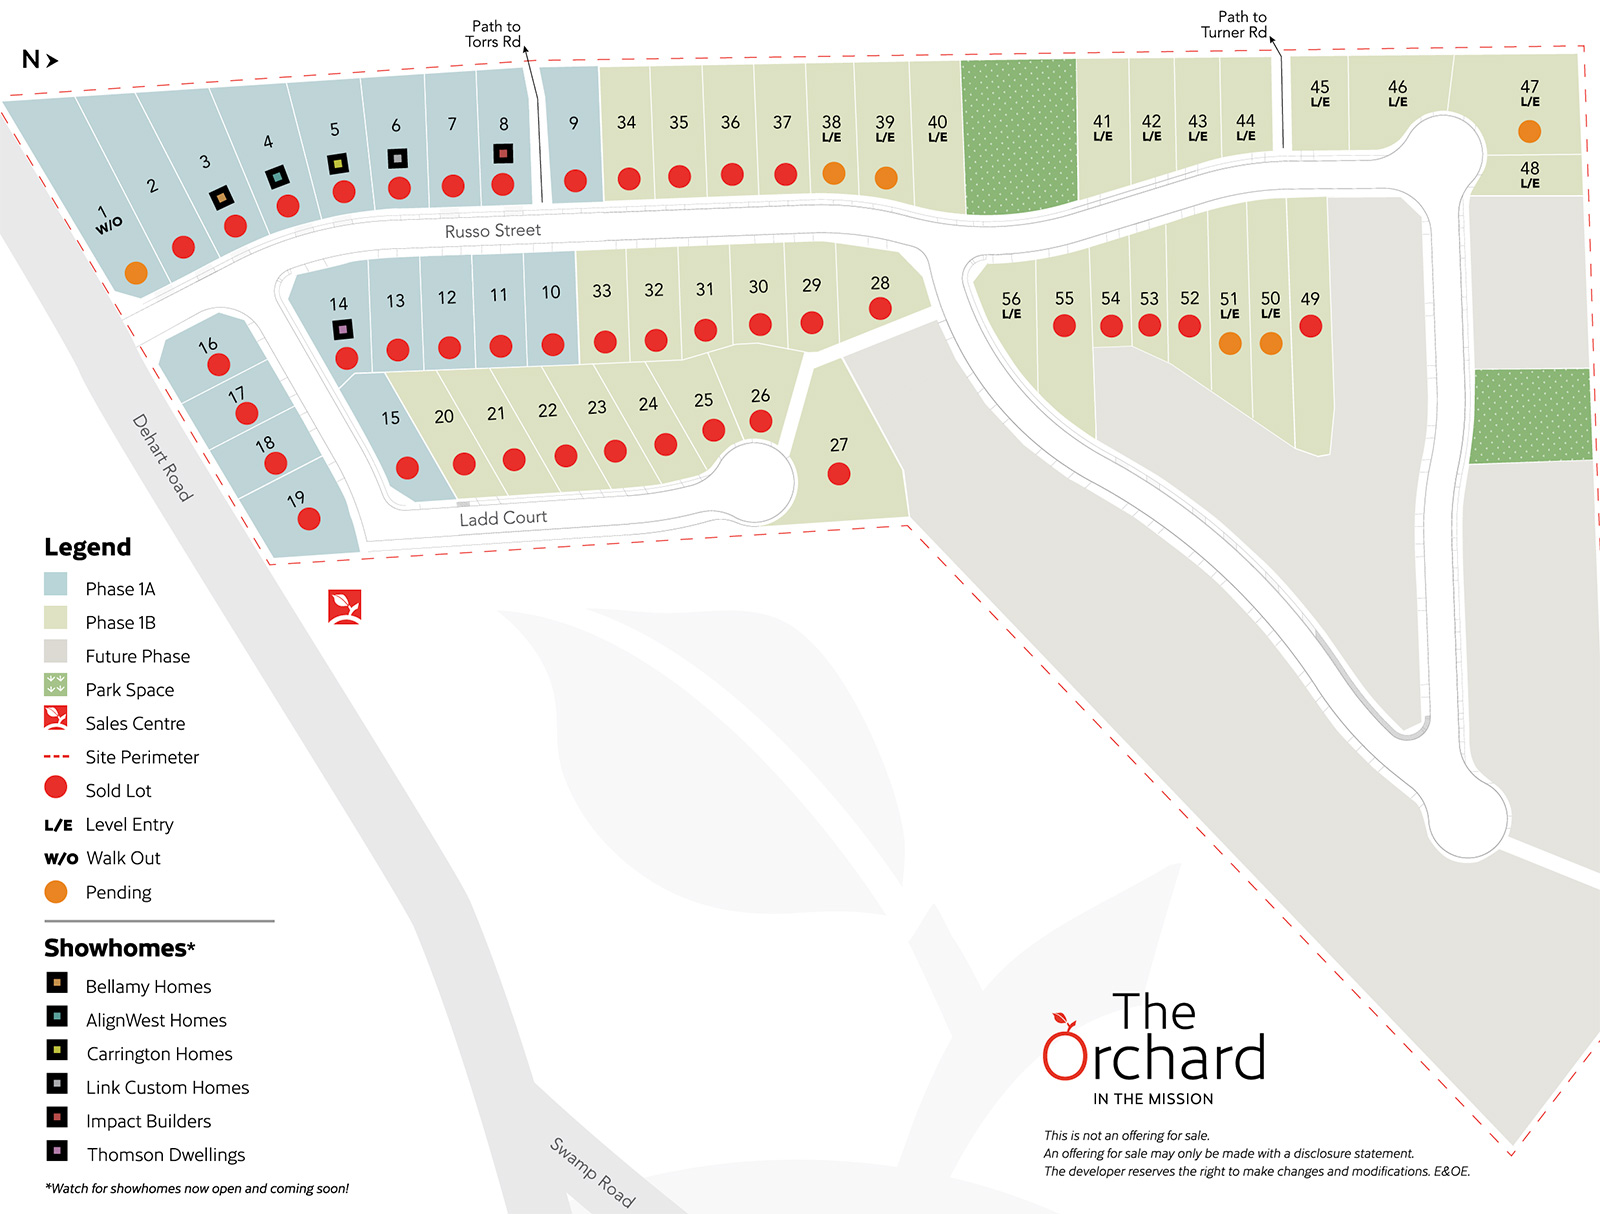 The Orchard Kelowna - Available Lots in Kelowna Mission